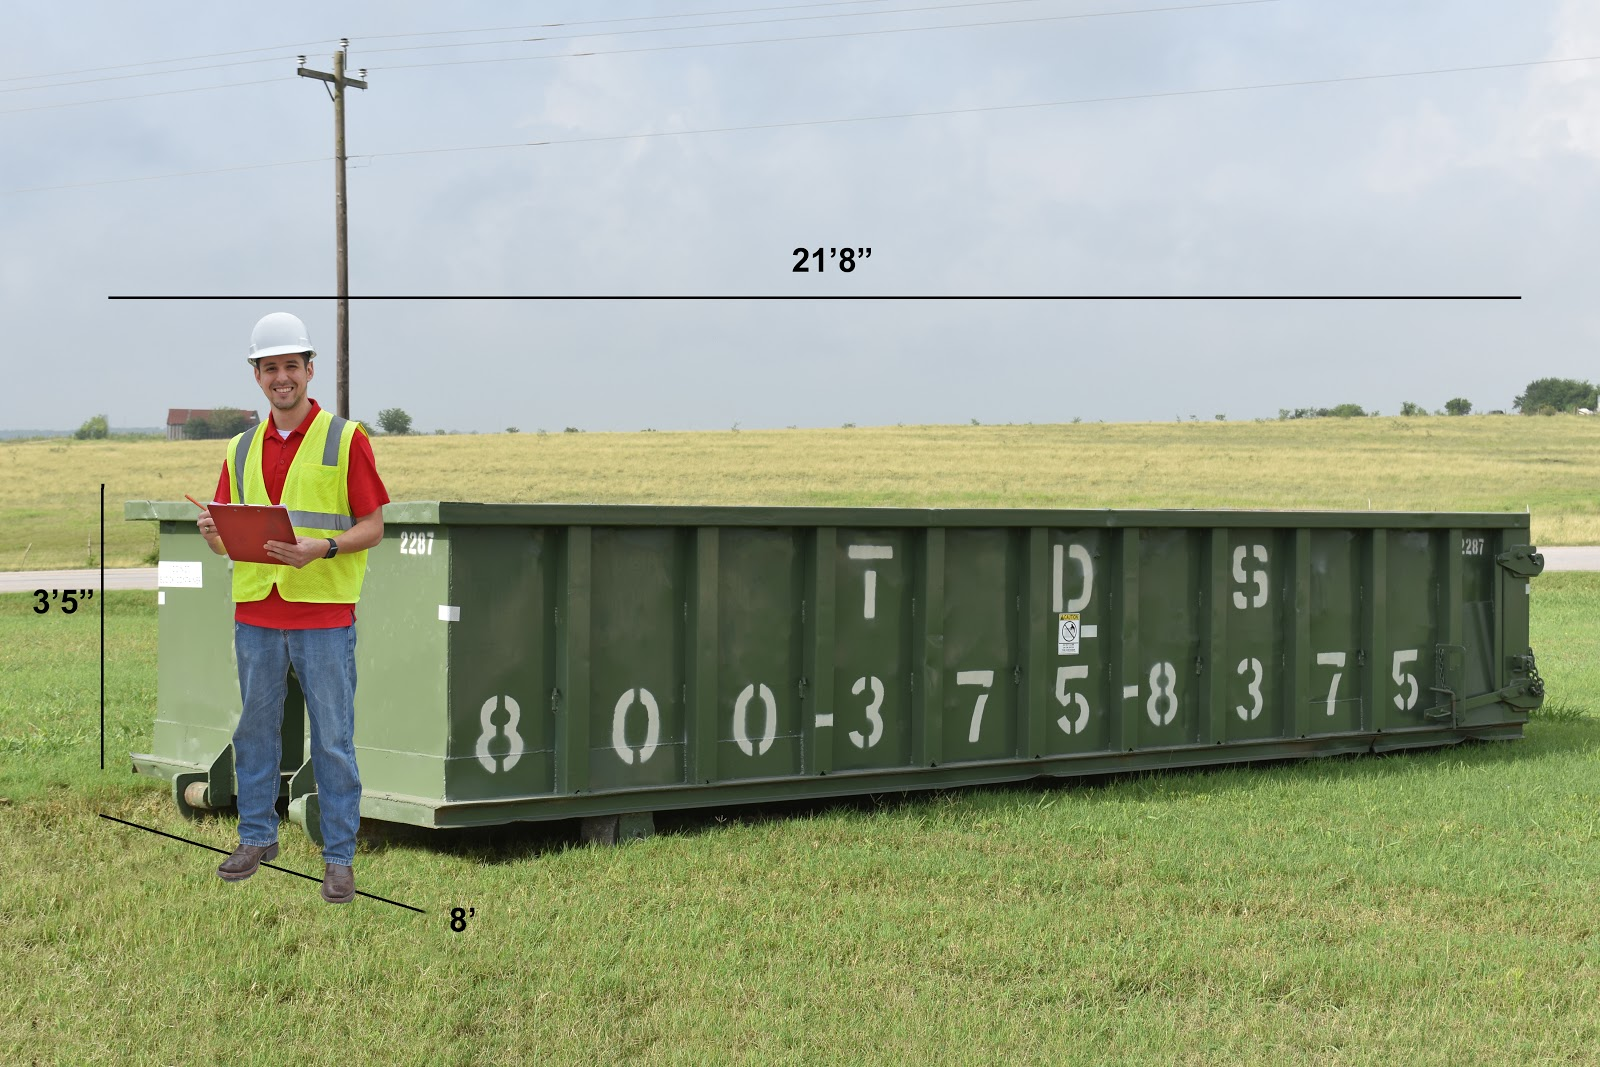 20-yard dumpster rental dimensions